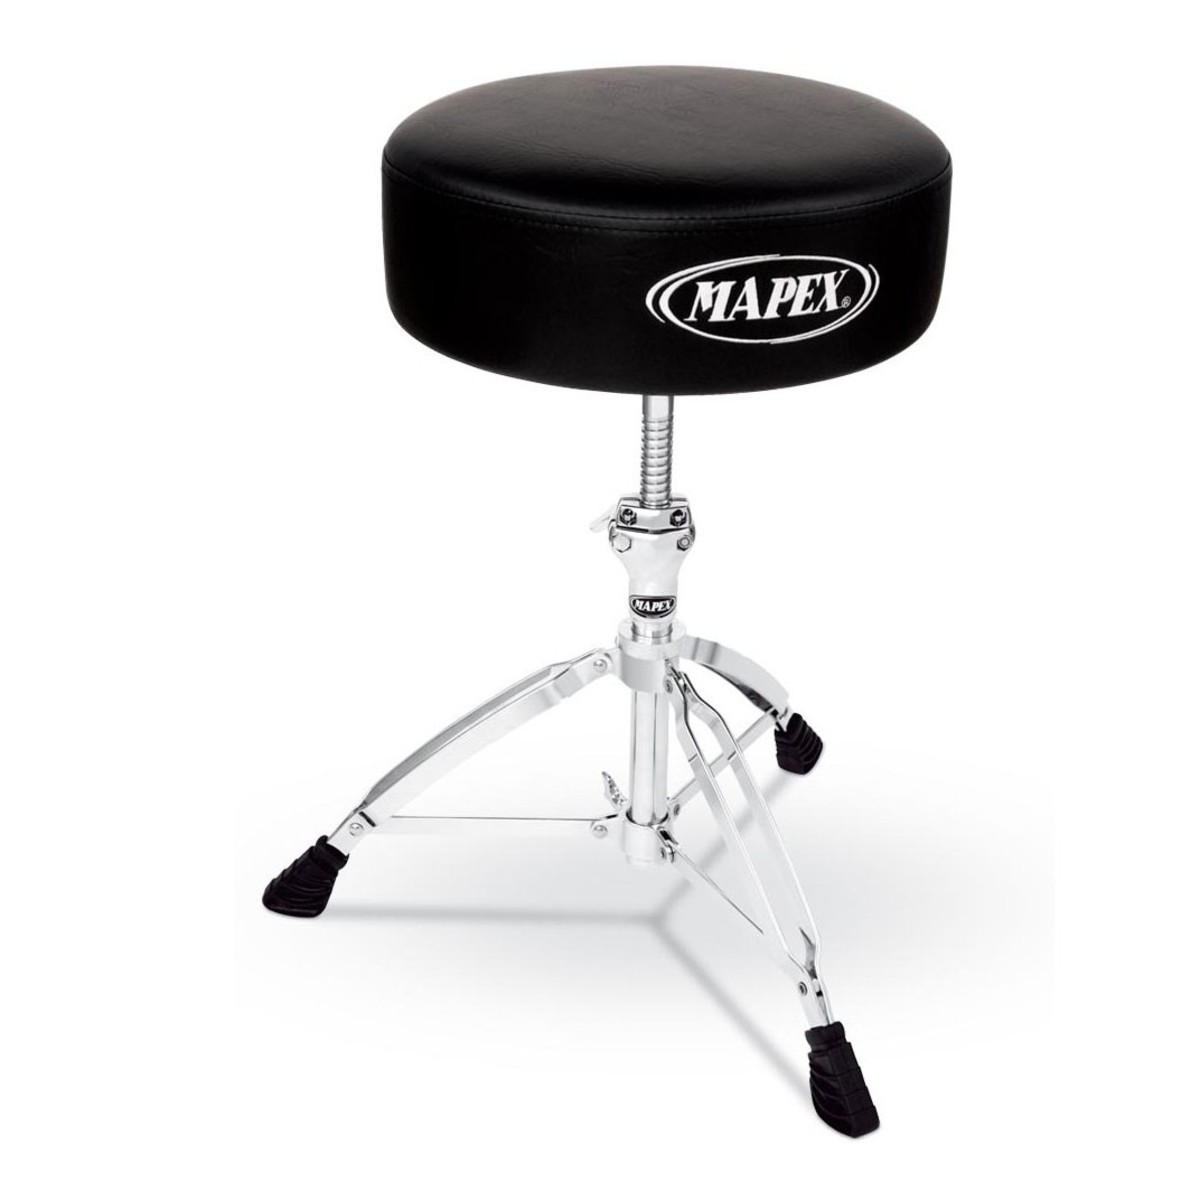 Image of Mapex T750A Double Braced Round Throne